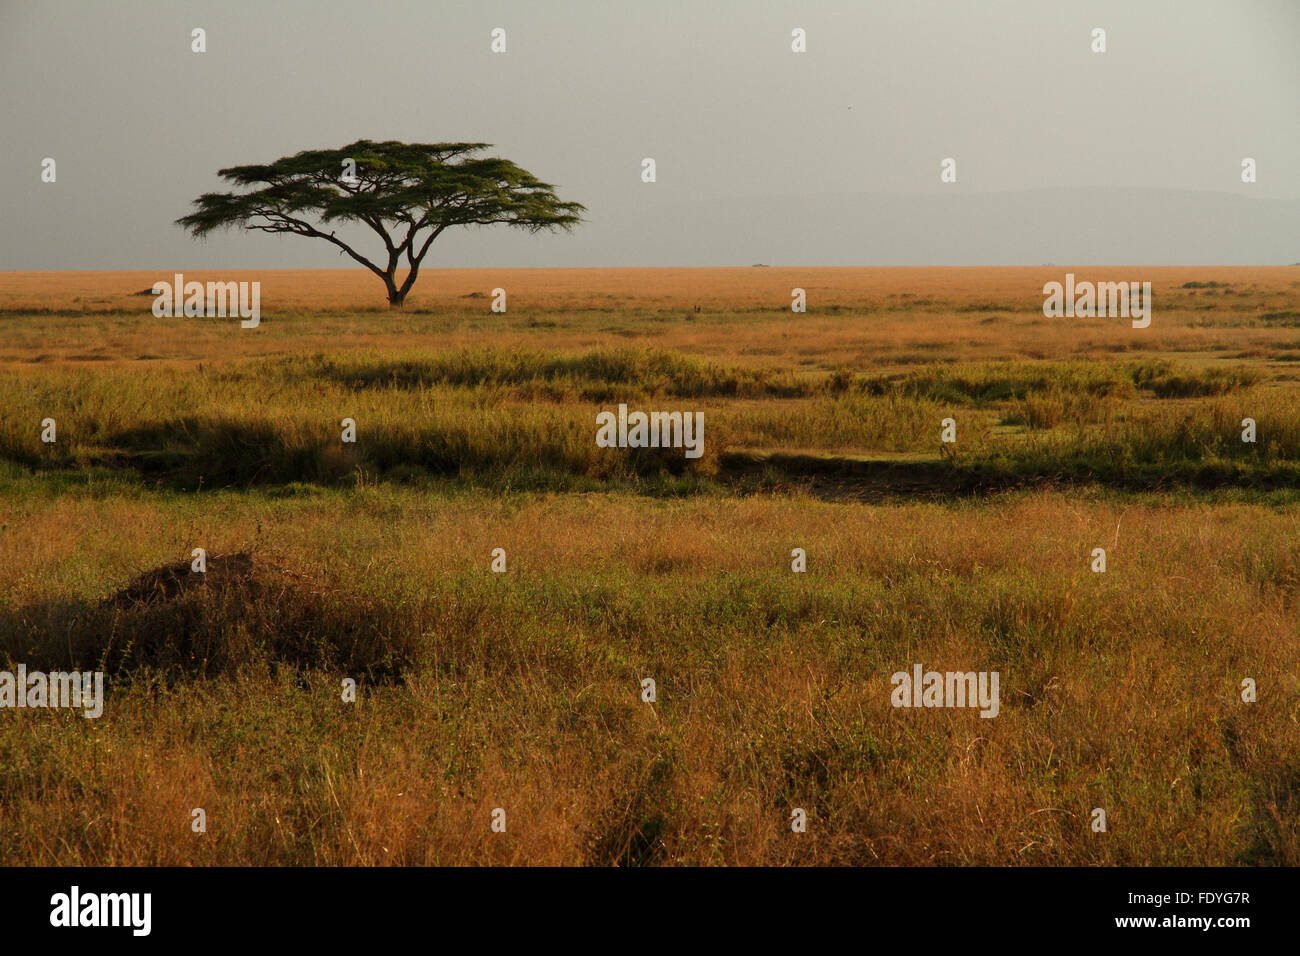 A lone acacia tree sitting in the colorful grasses of the African savannah - Stock Image